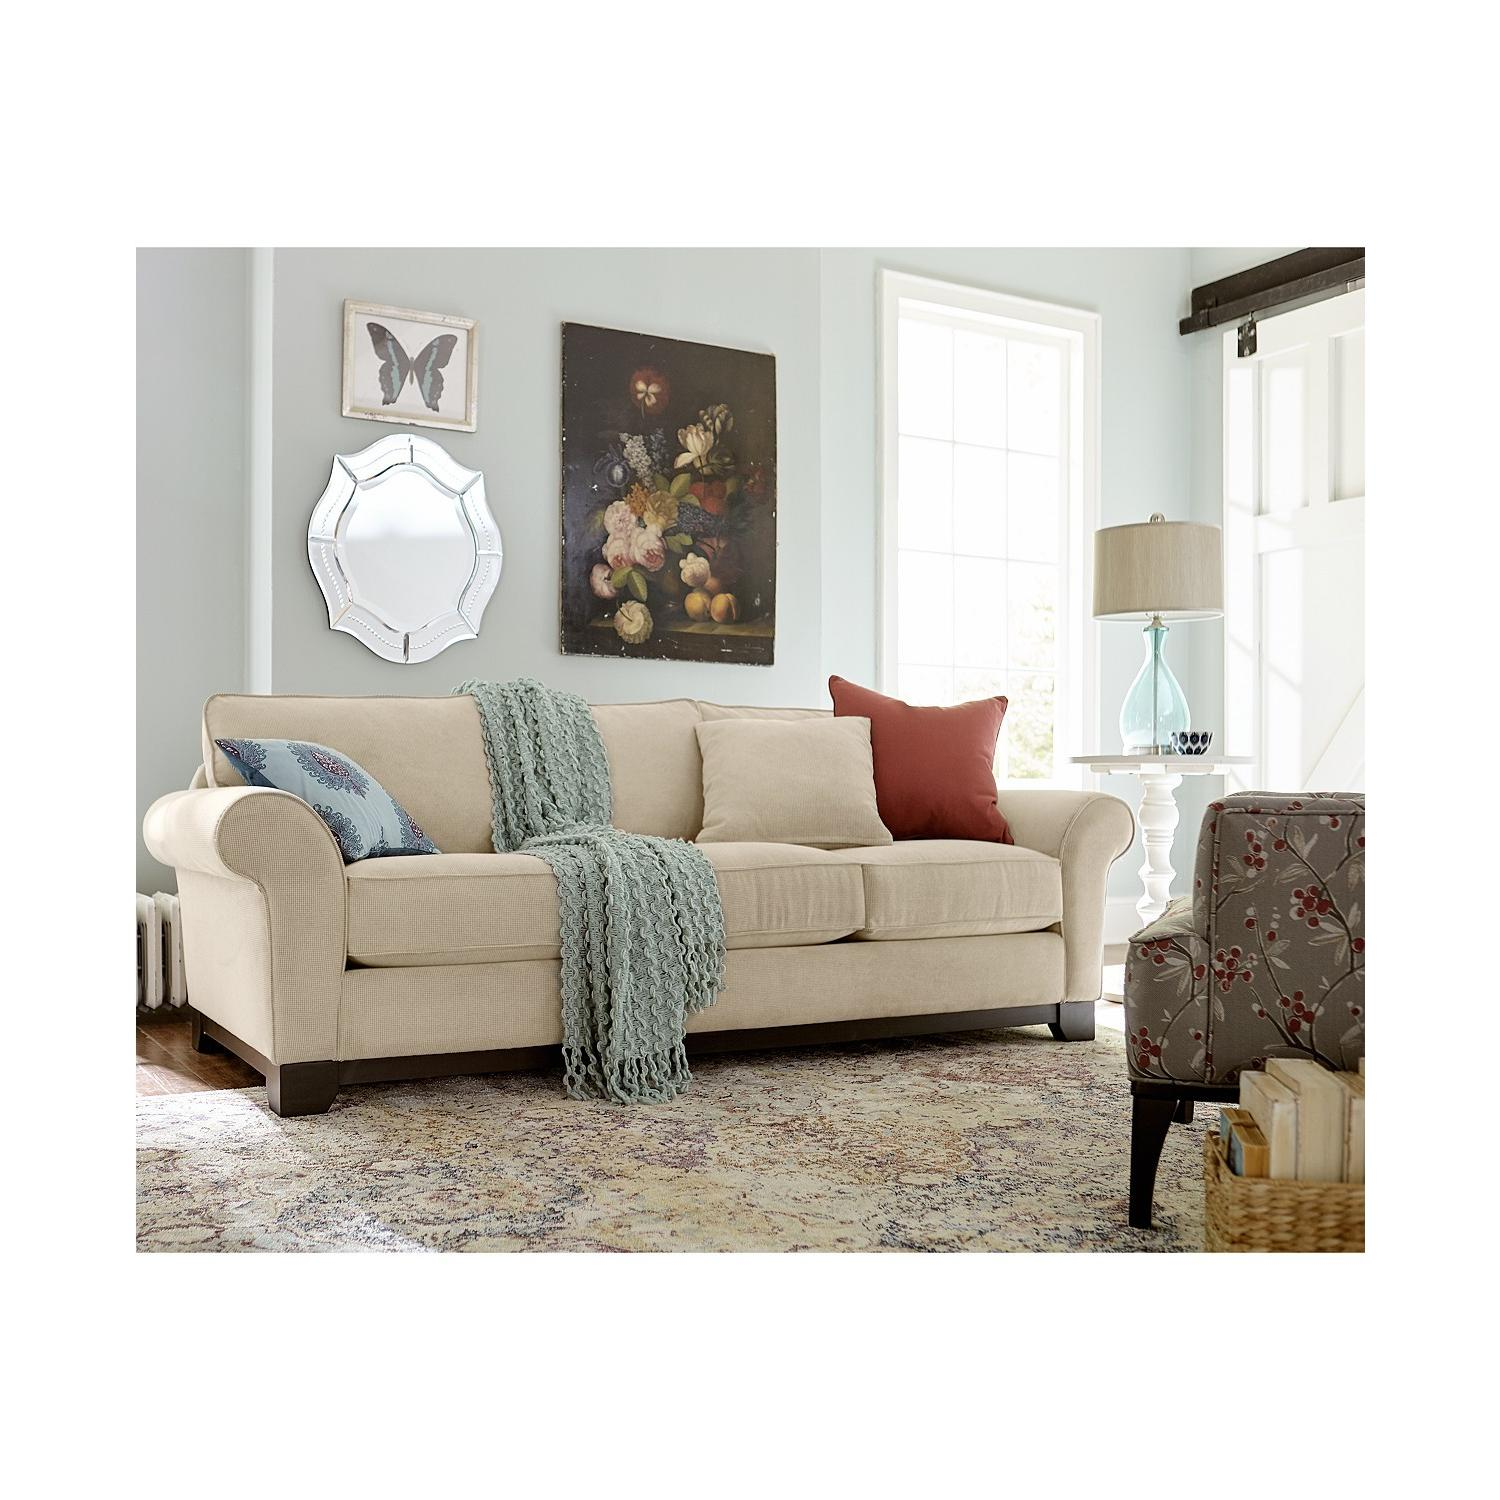 Macy's Medland Fabric Roll Arm Loveseat w/ 2 Pillows - image-1